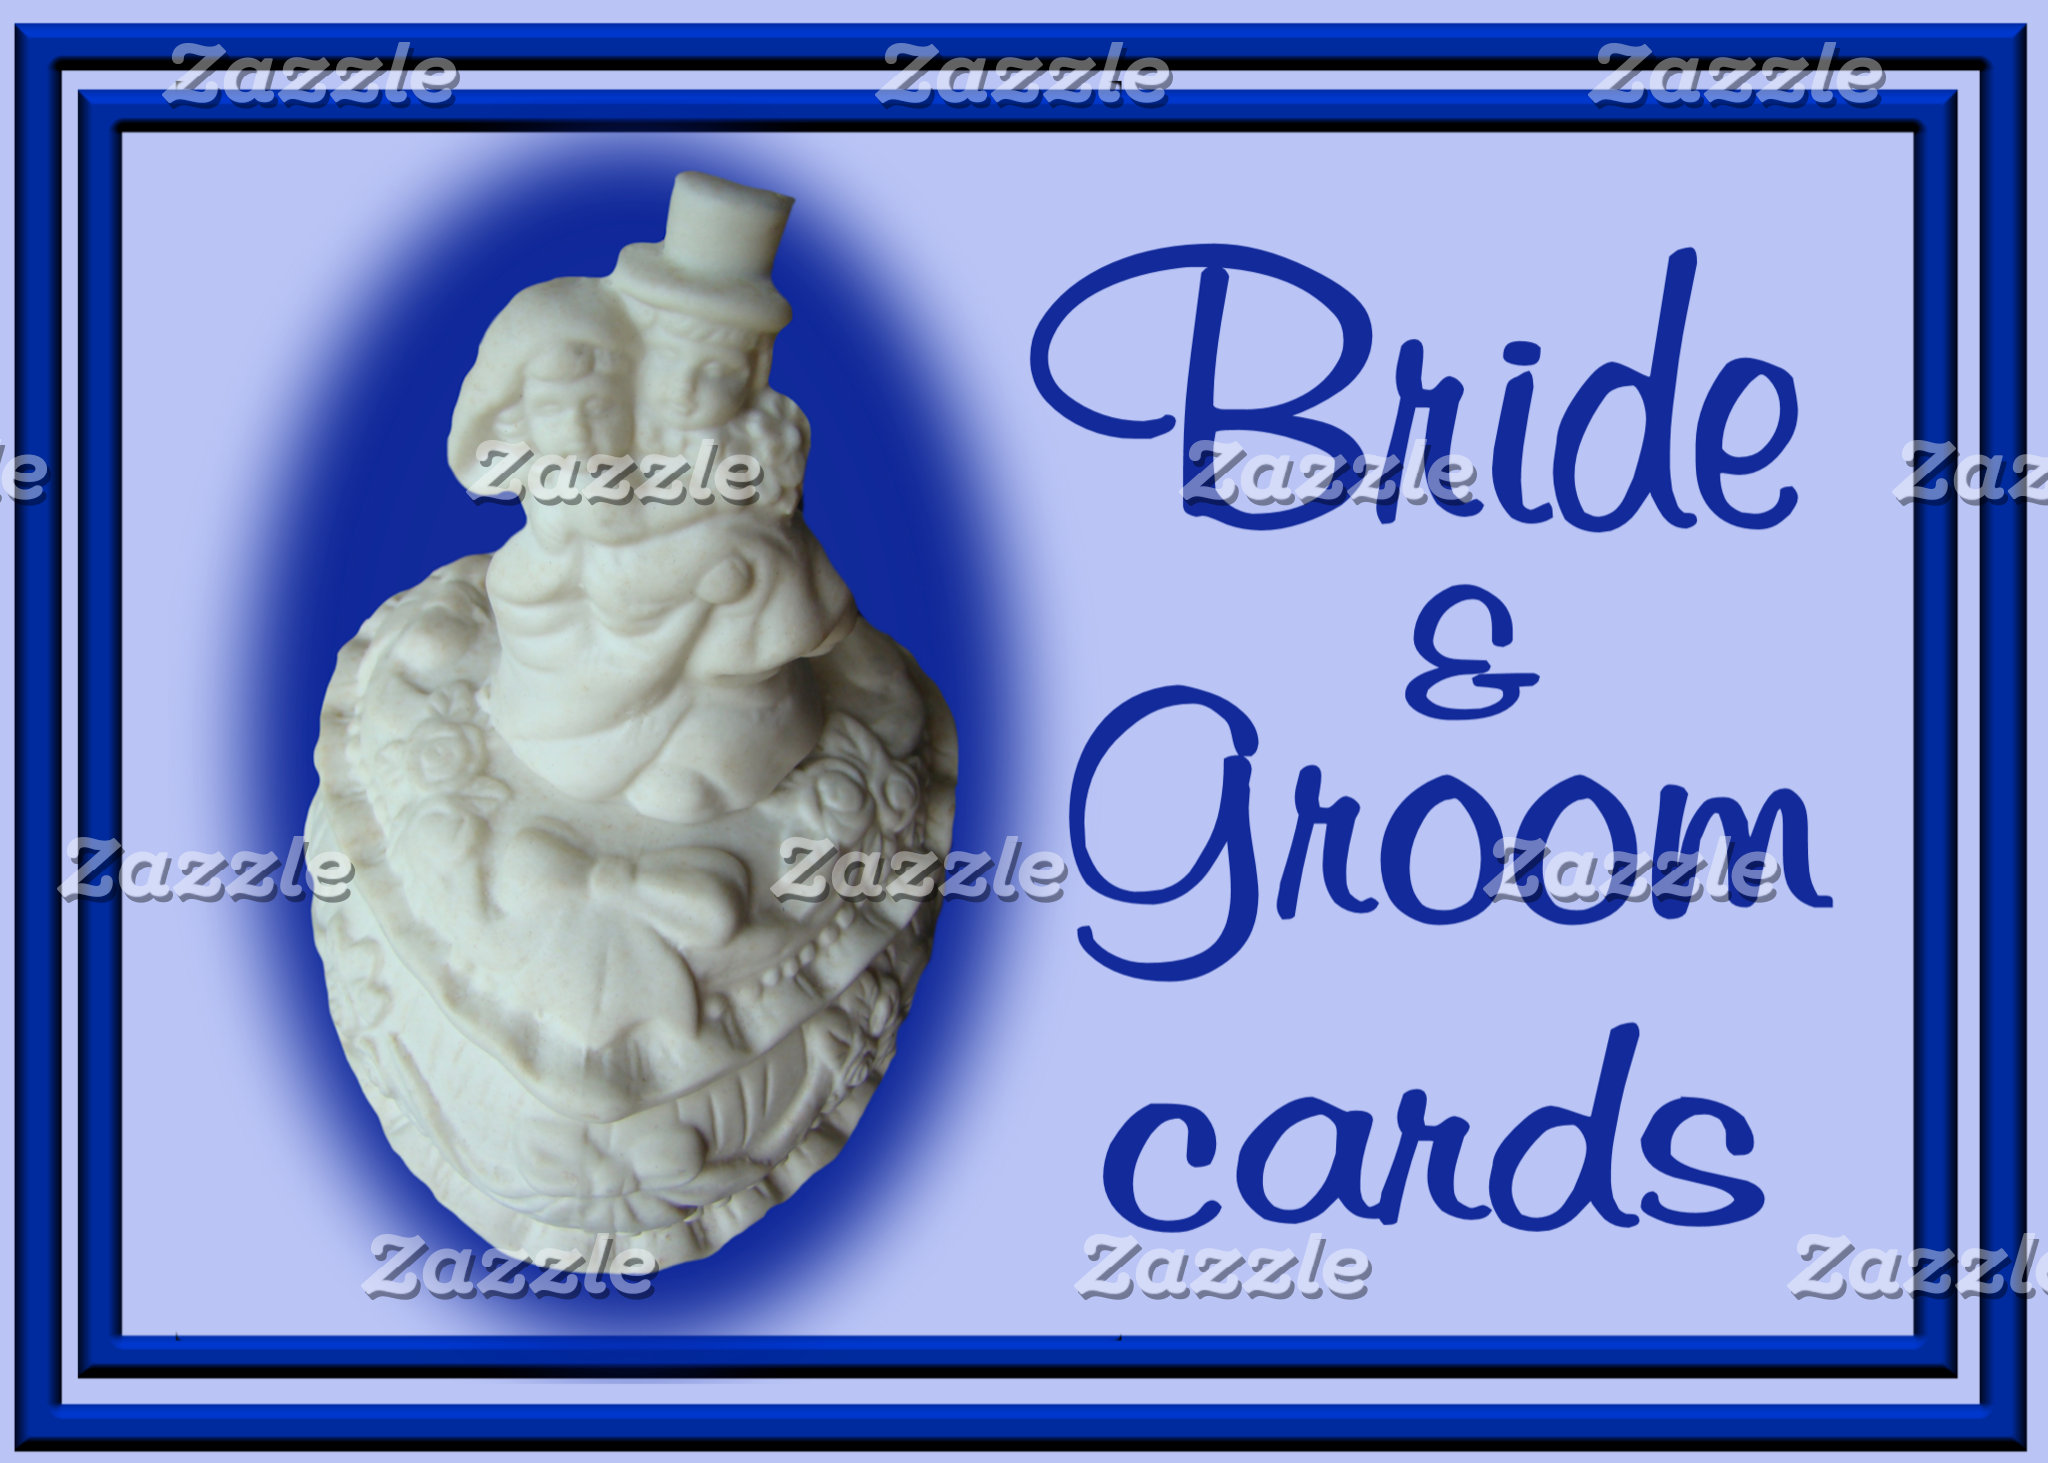 WEDDING CARDS AND GIFTS  for the Bride and Groom